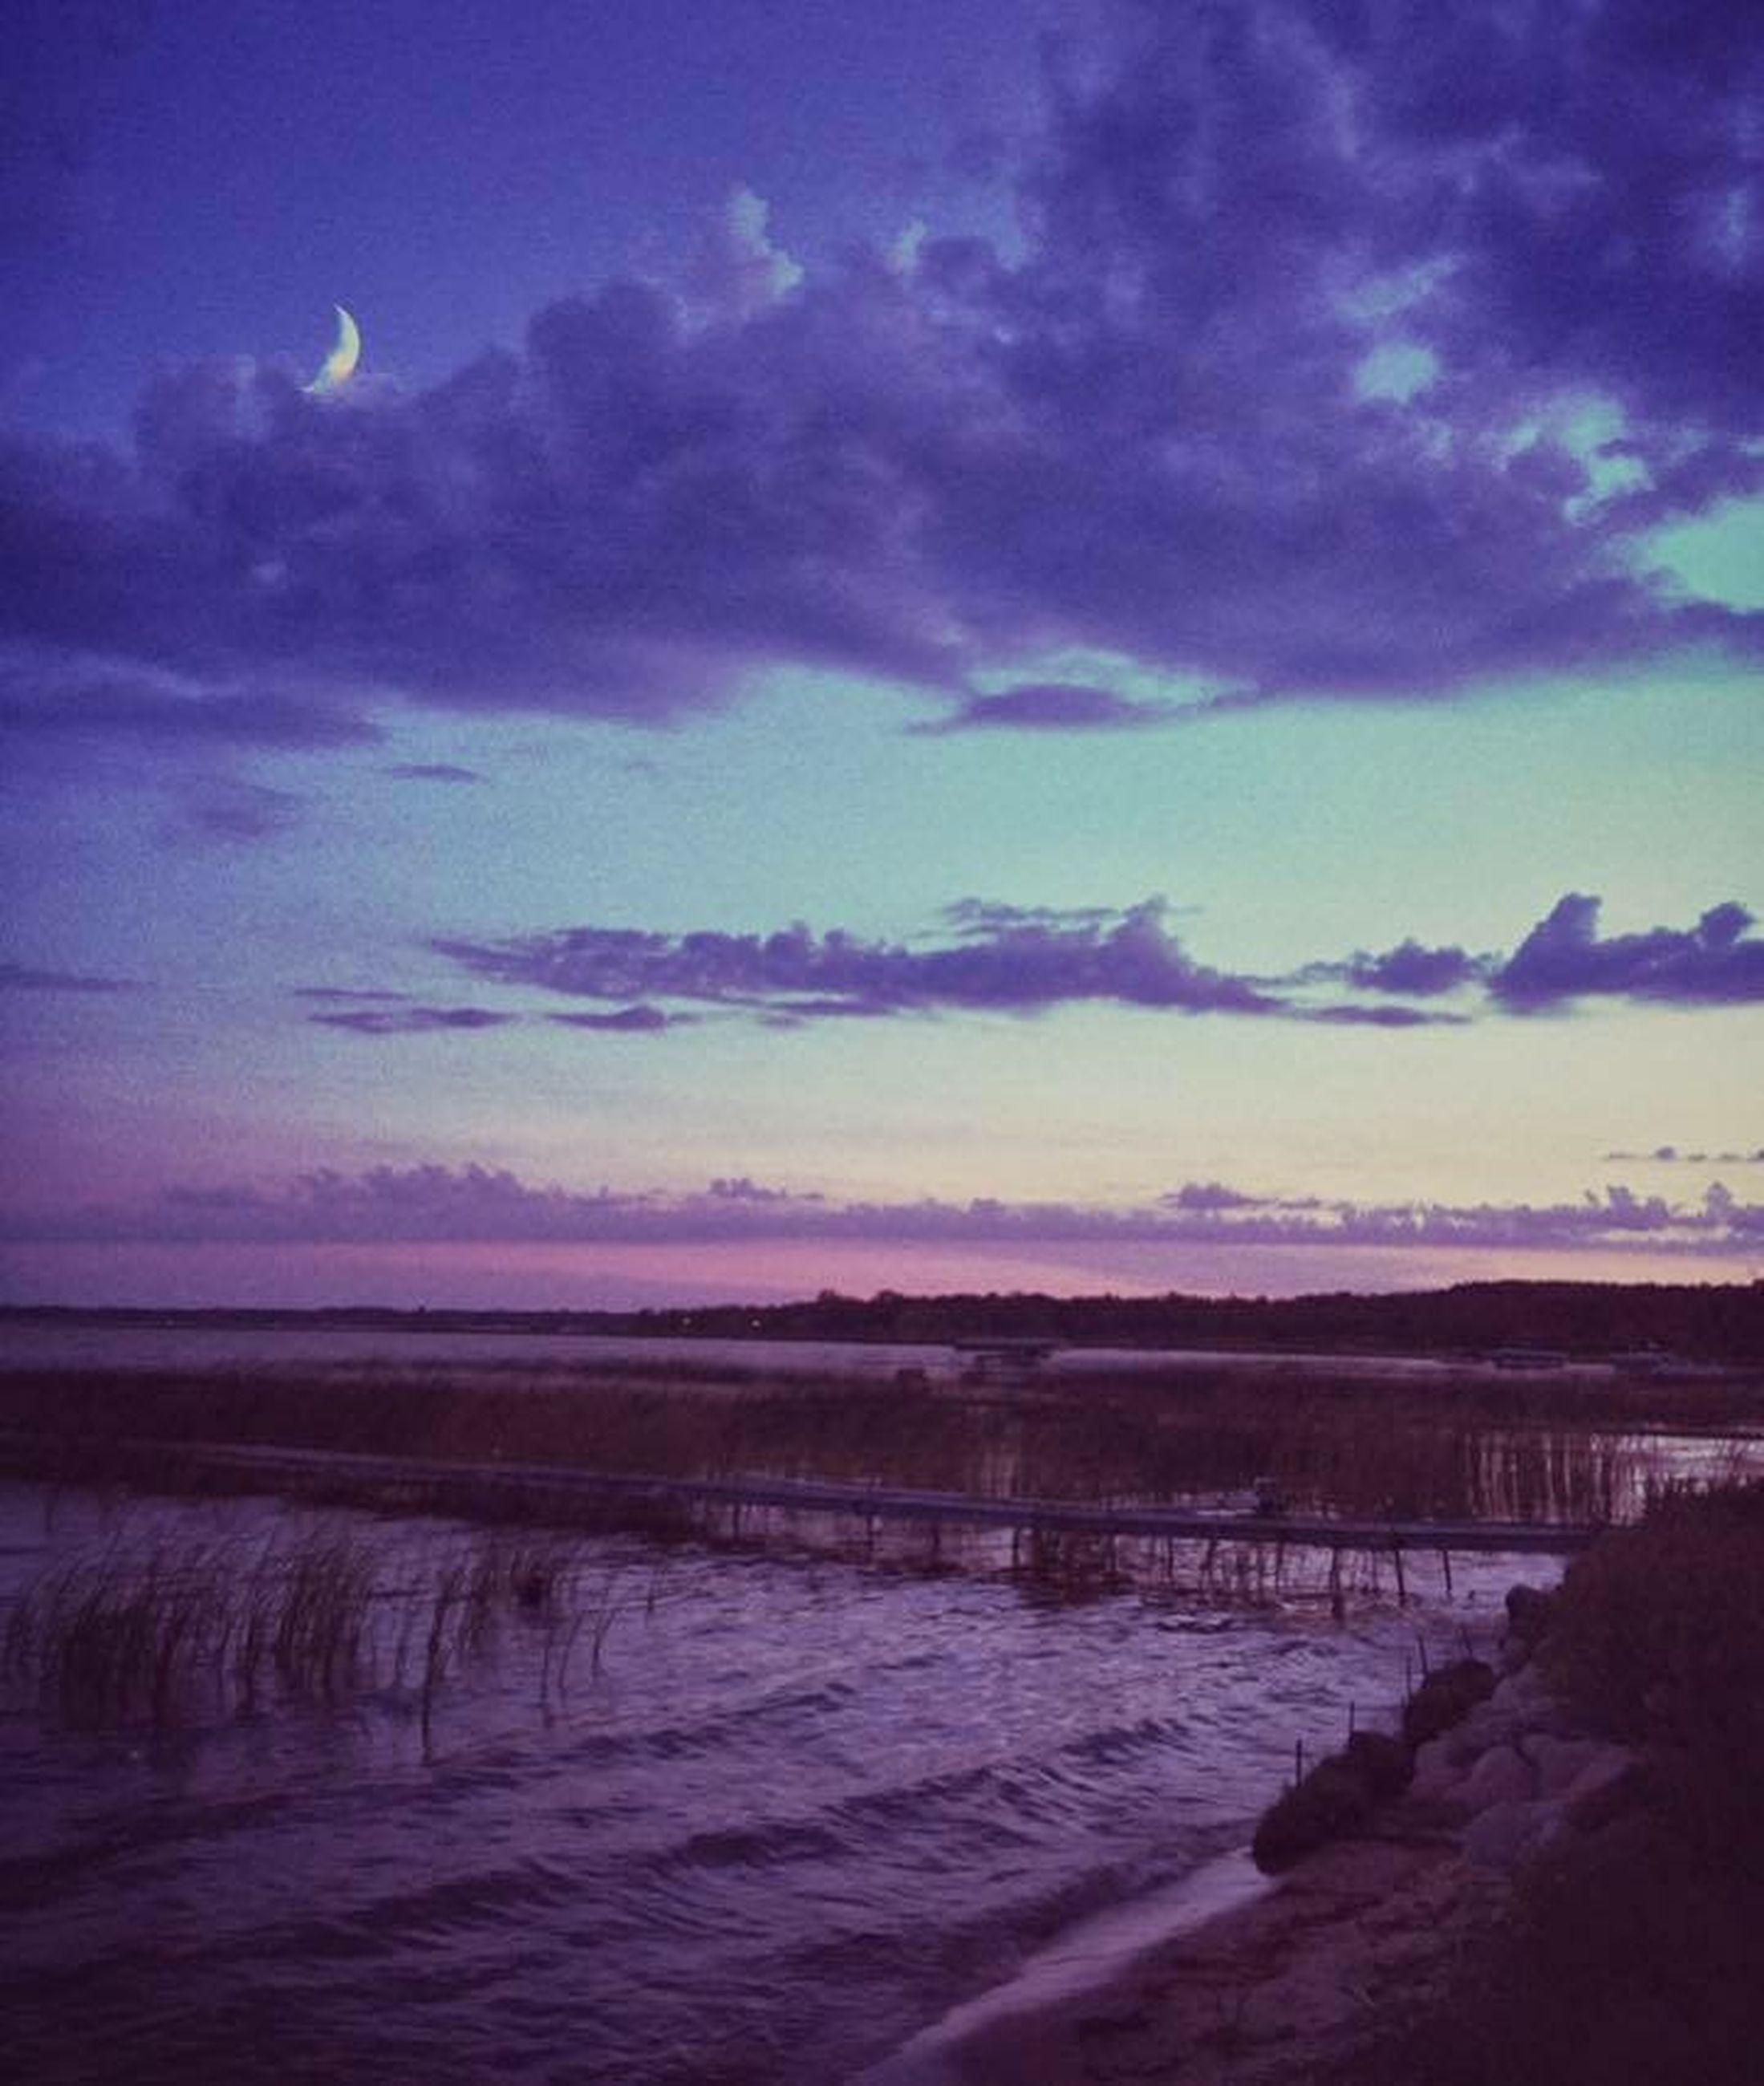 sky, water, tranquil scene, scenics, cloud - sky, tranquility, beauty in nature, nature, sunset, sea, cloudy, cloud, dusk, idyllic, blue, beach, landscape, weather, shore, lake